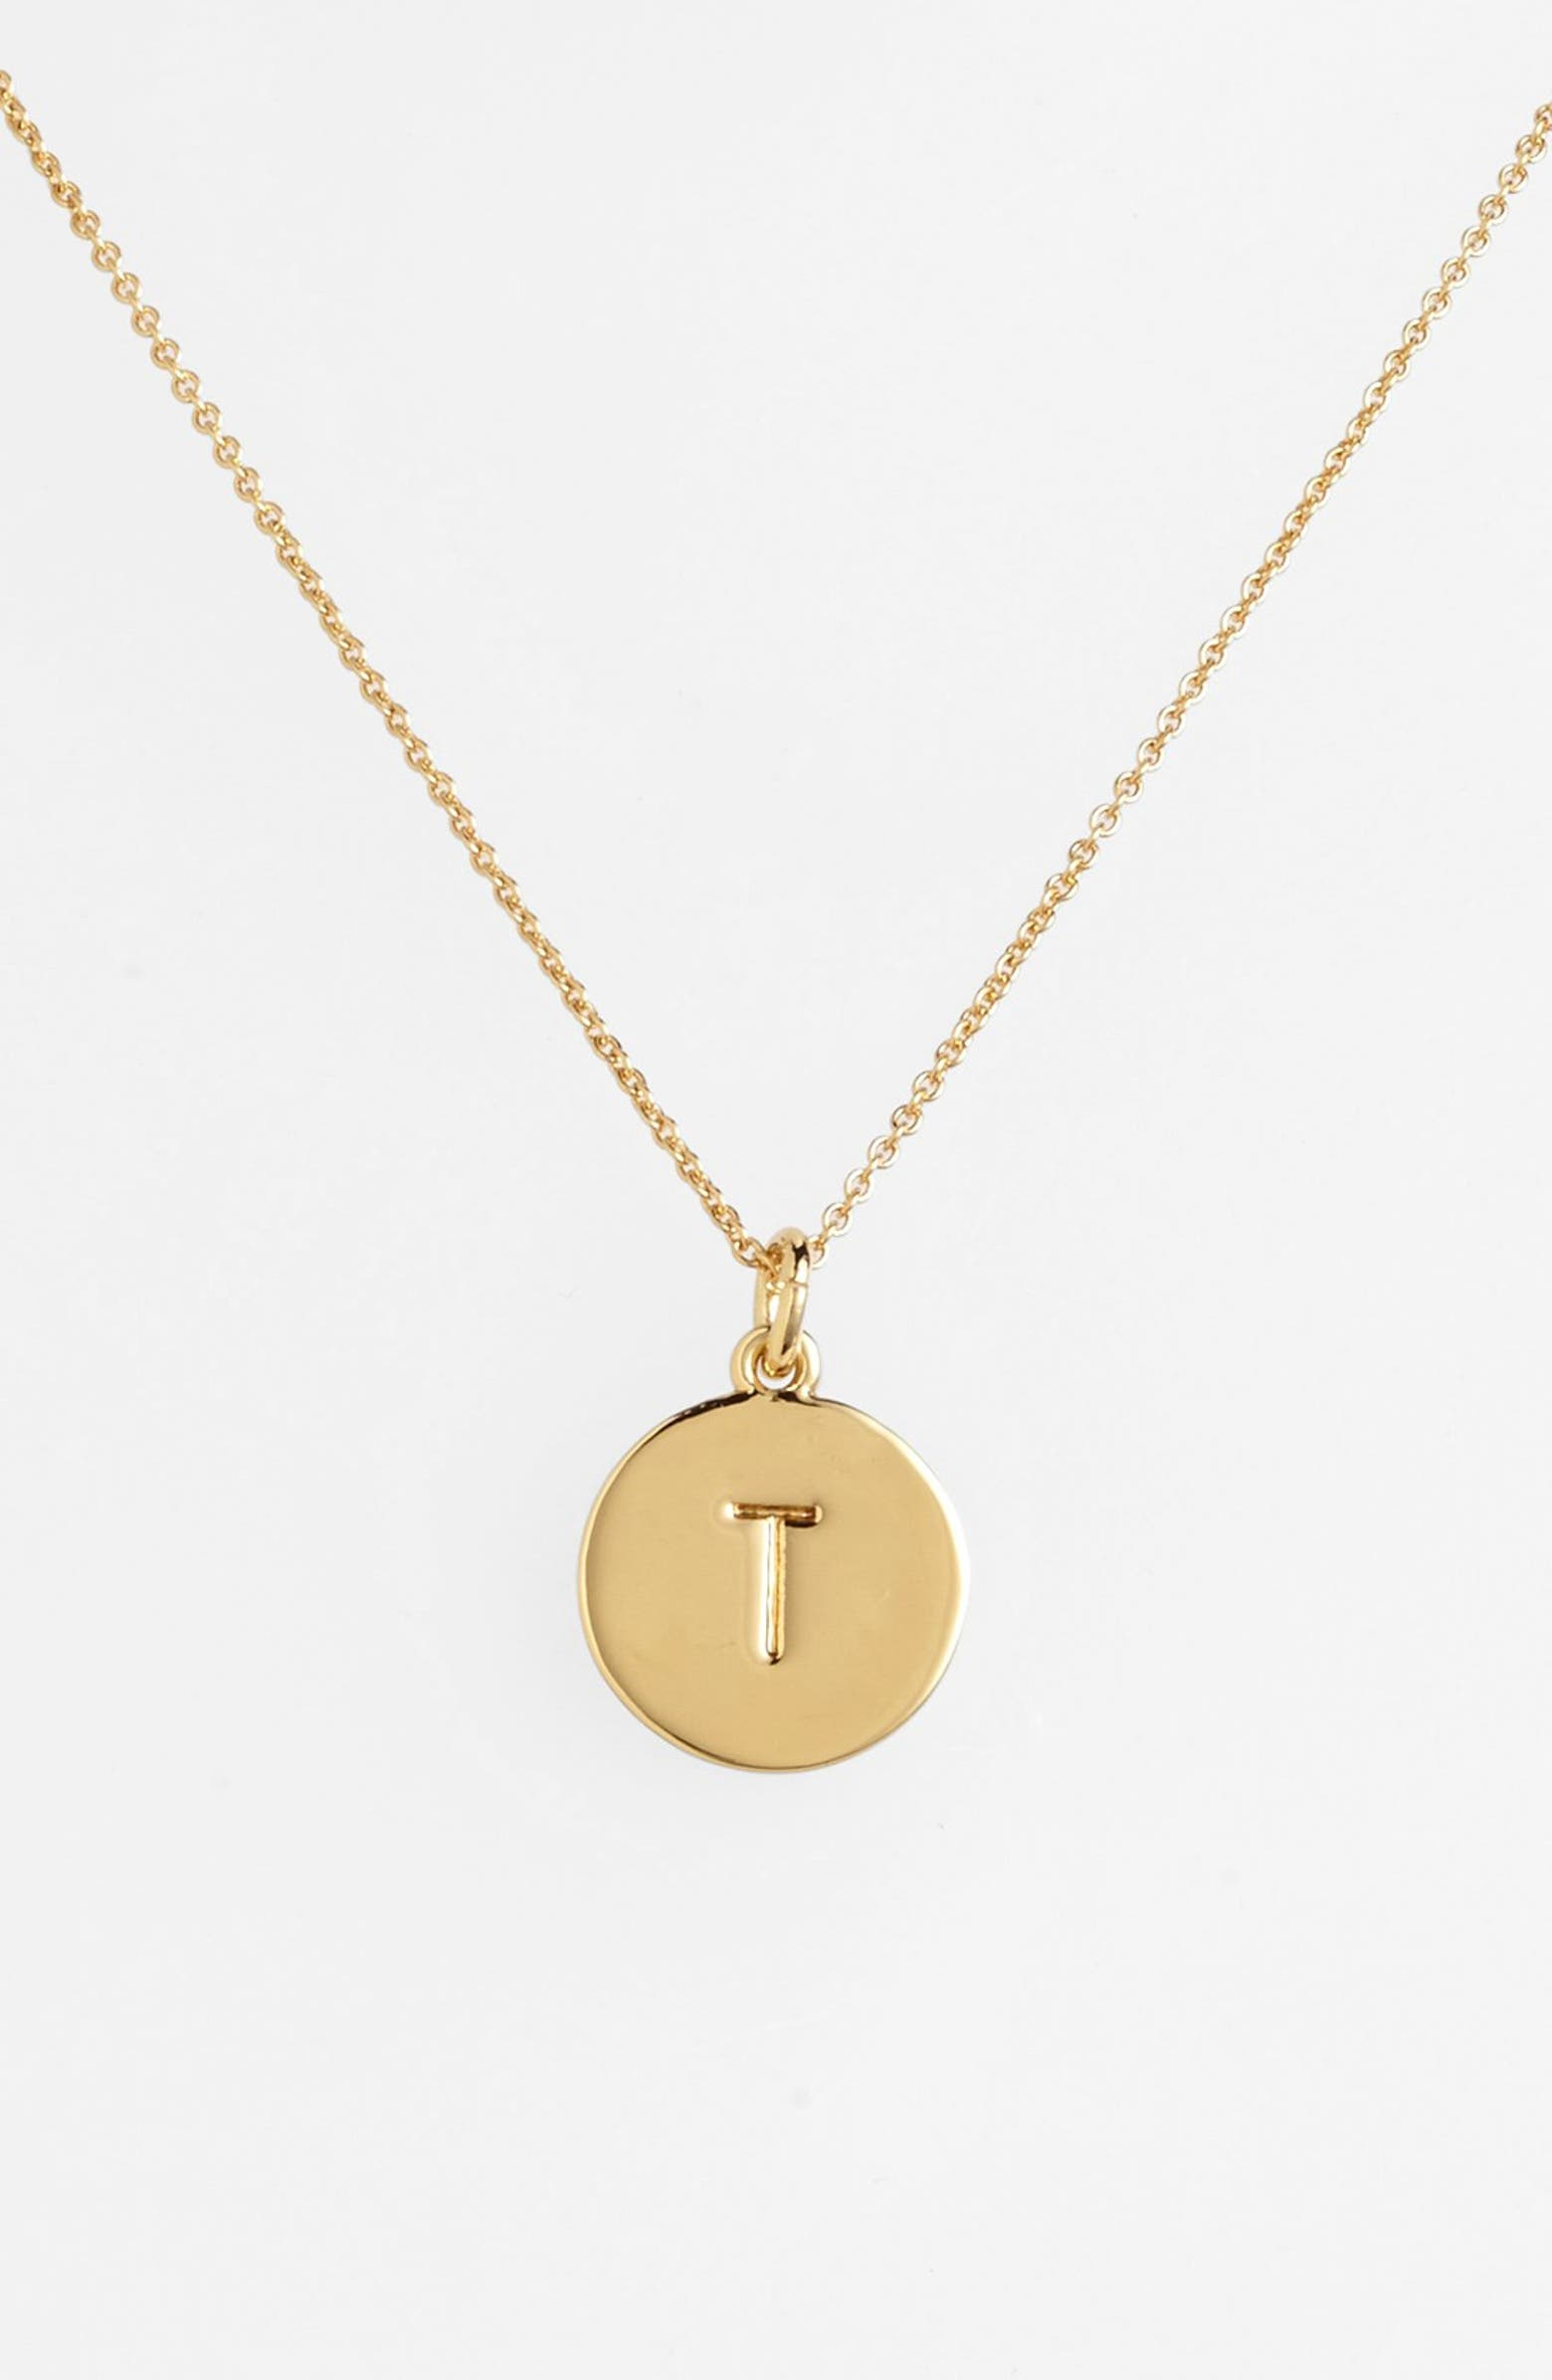 one in a million initial pendant necklace KATE SPADE NEW YORK